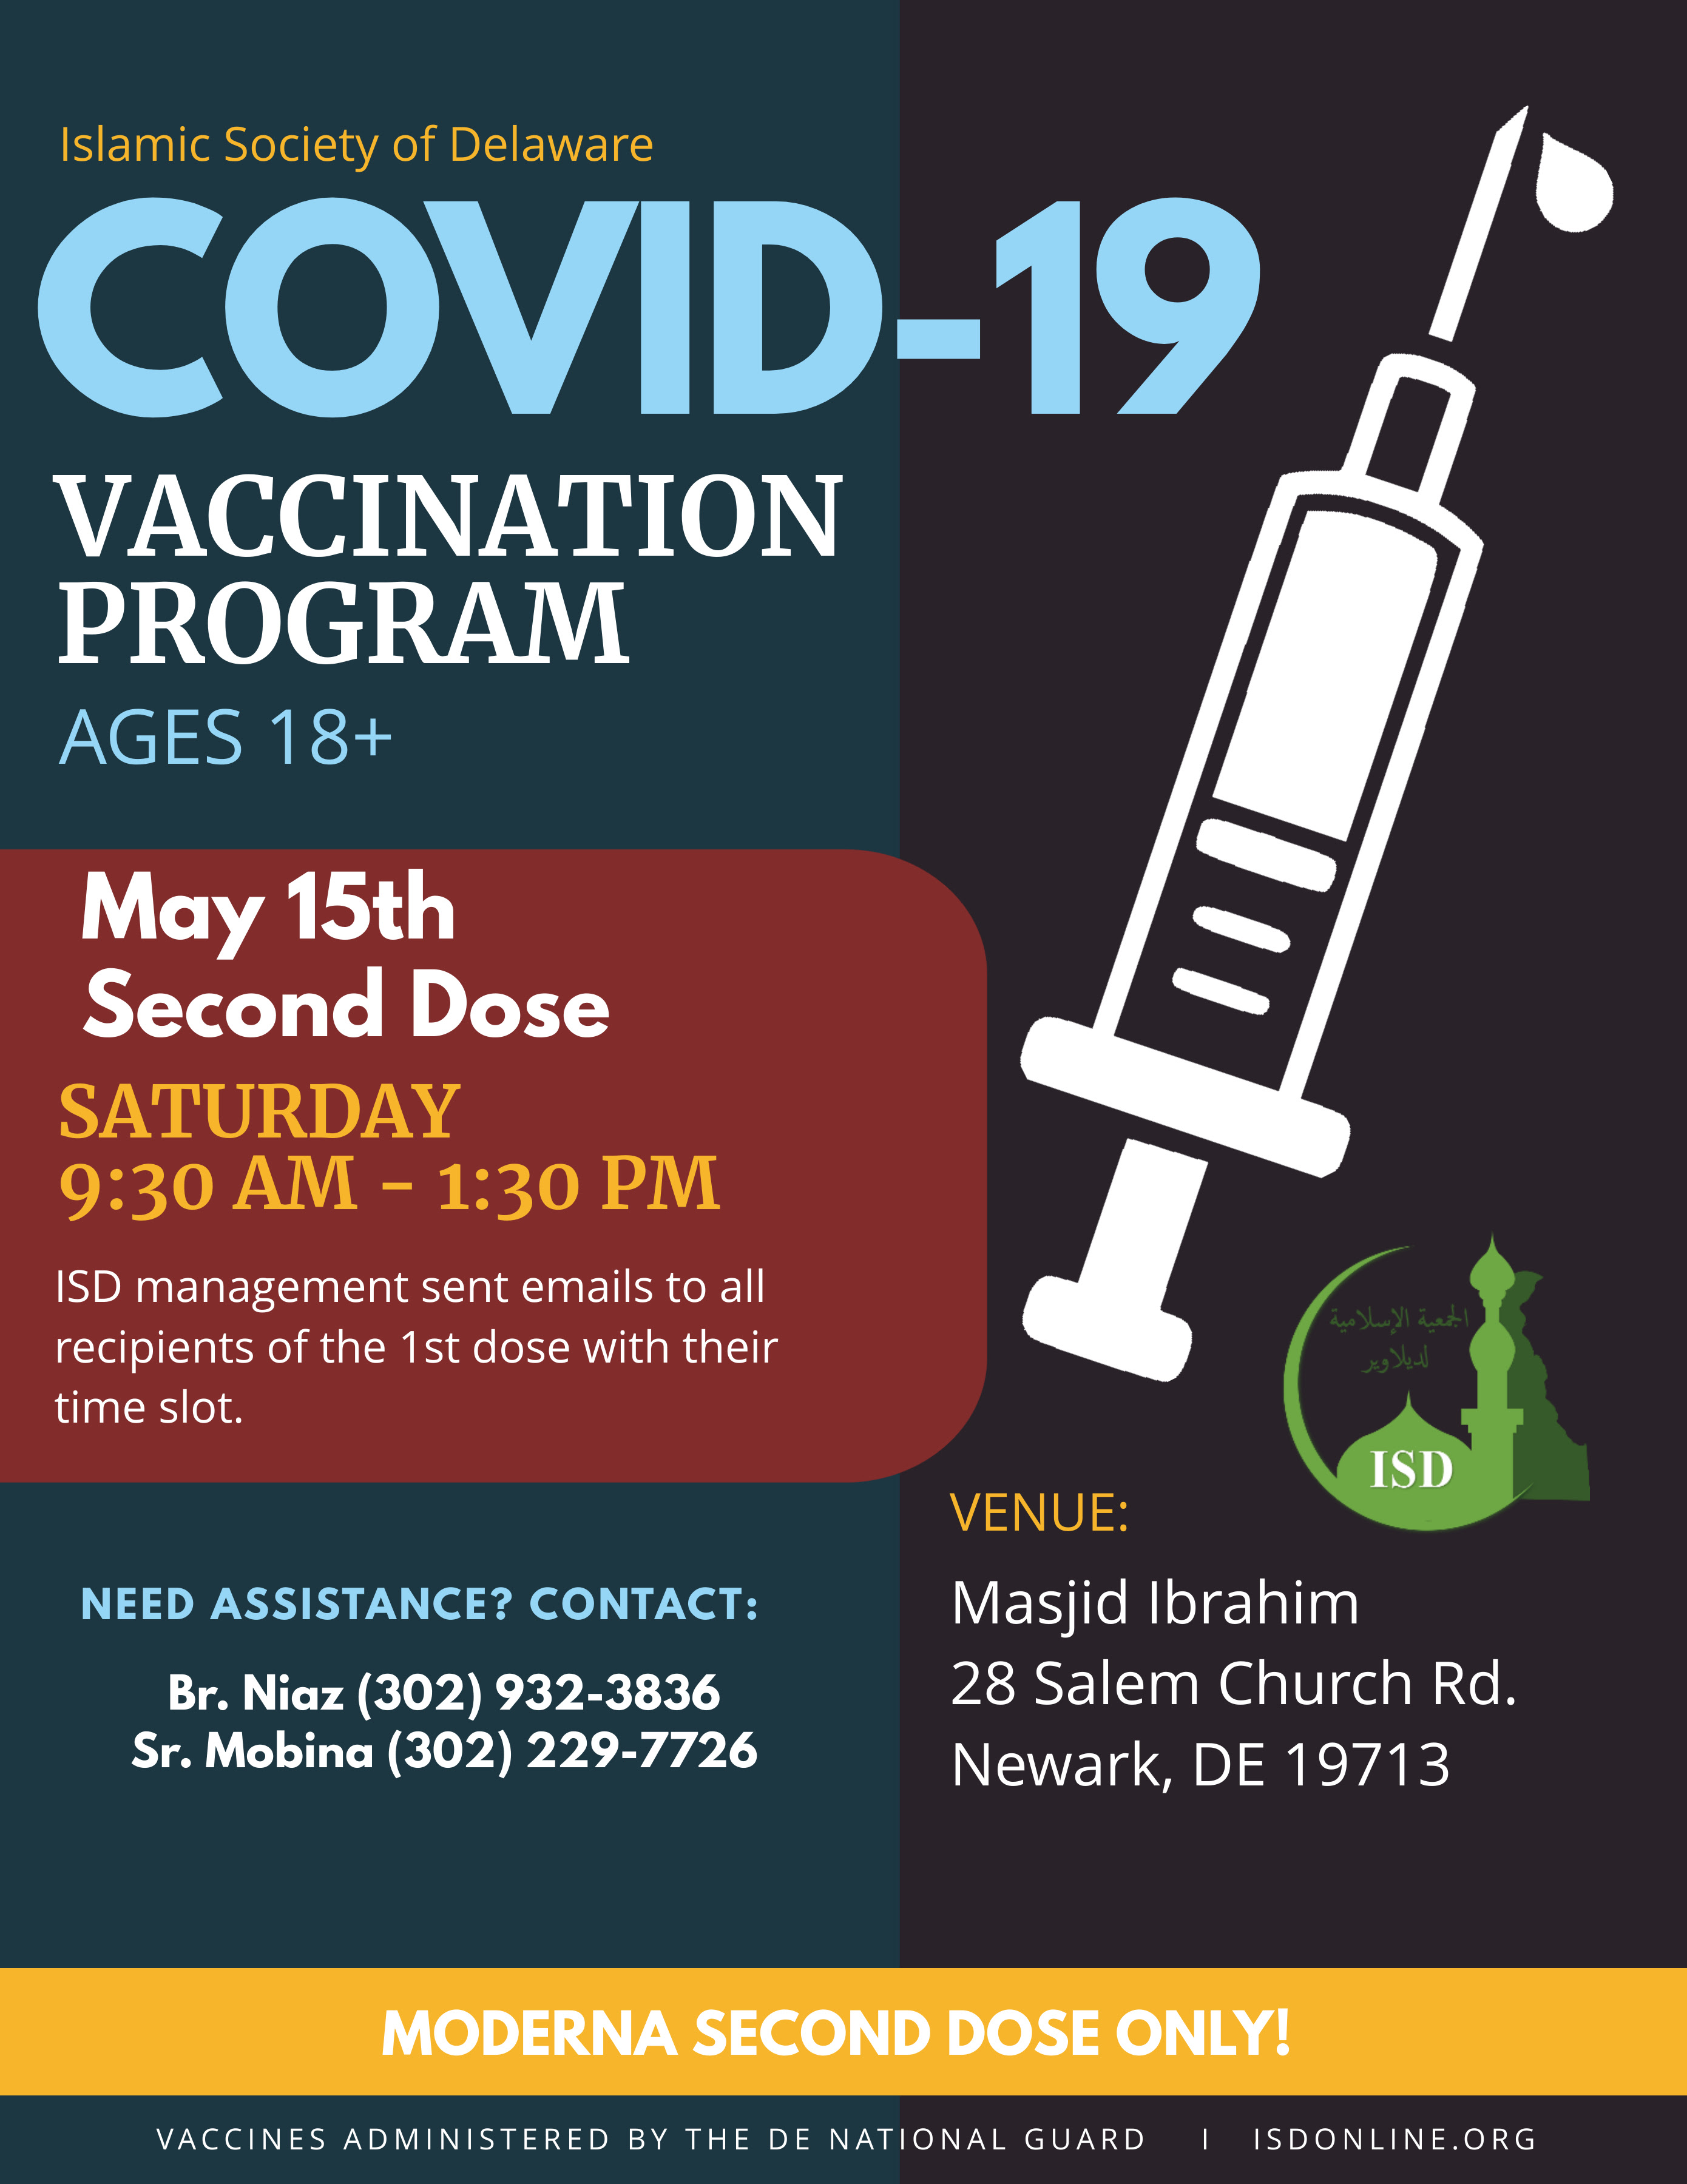 18+ COVID-19 Vaccination Event at ISD